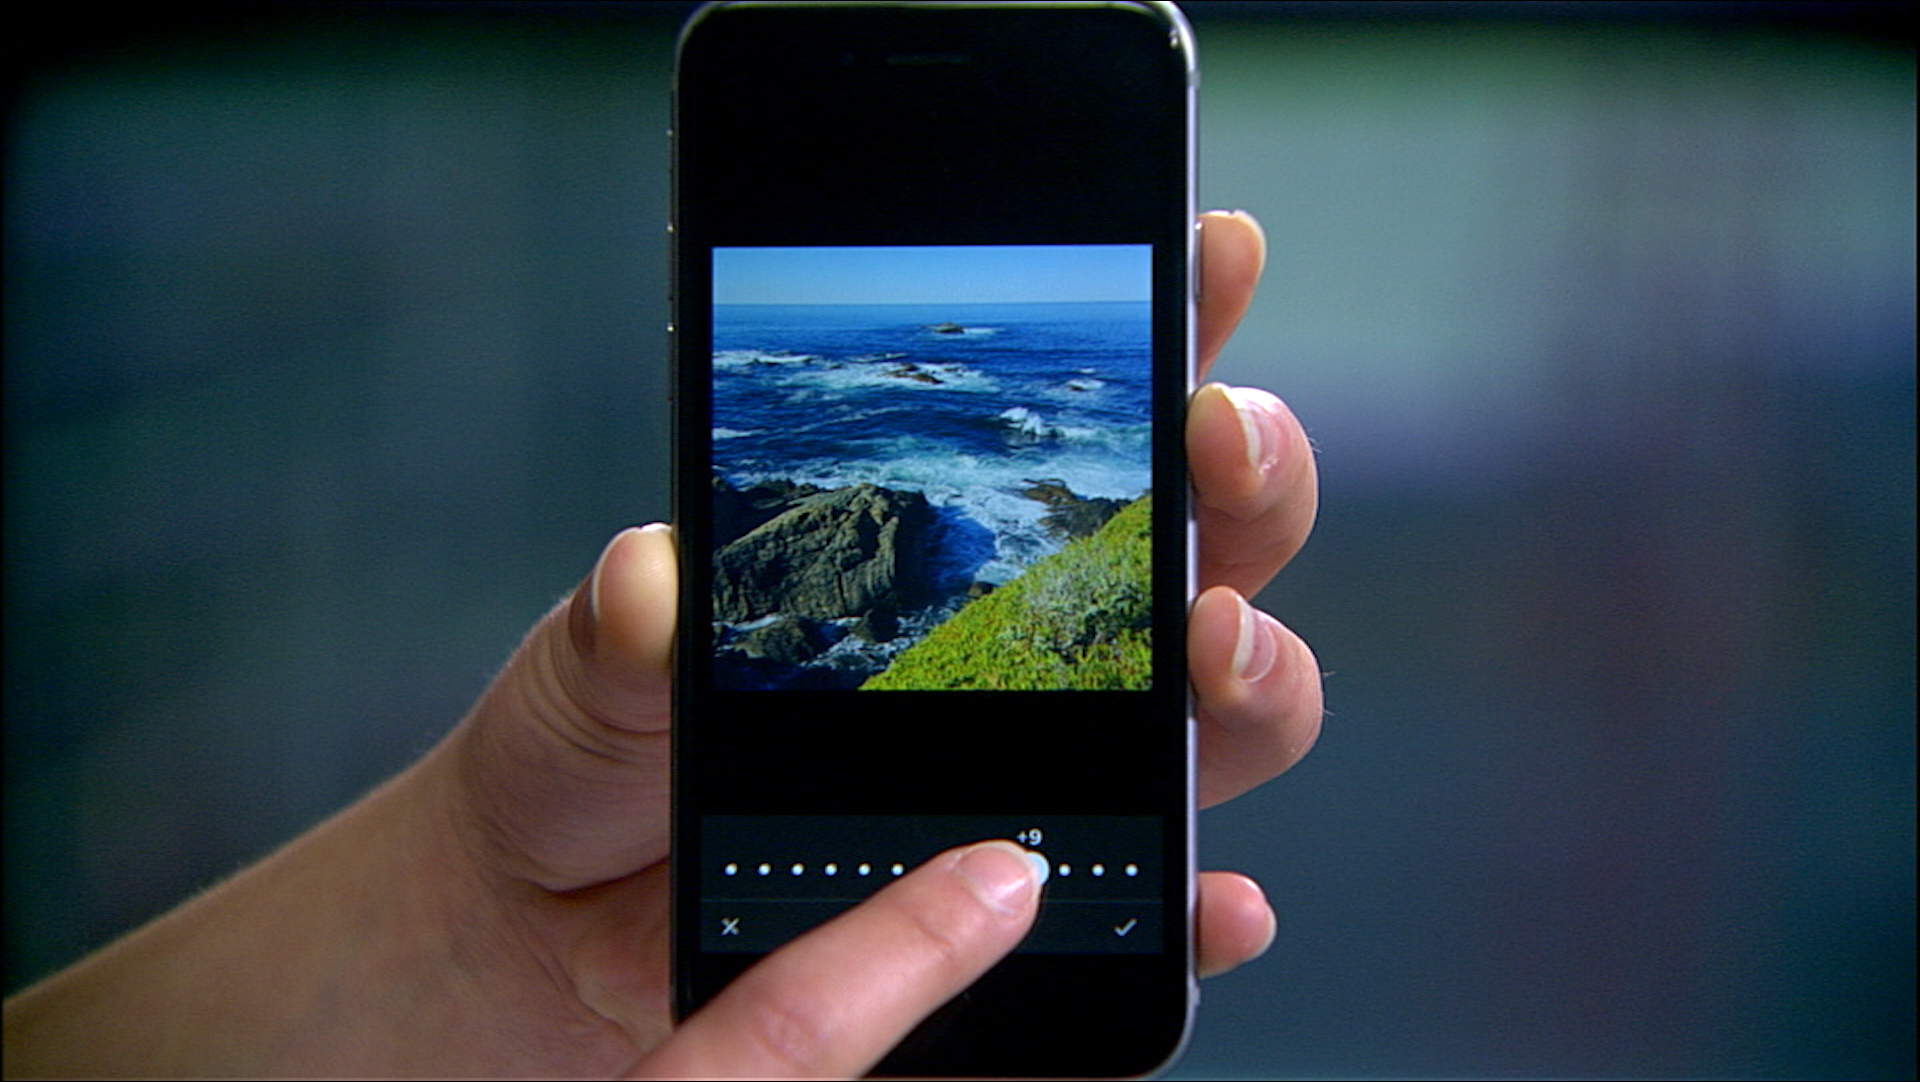 Video: Make your smartphone photos pop